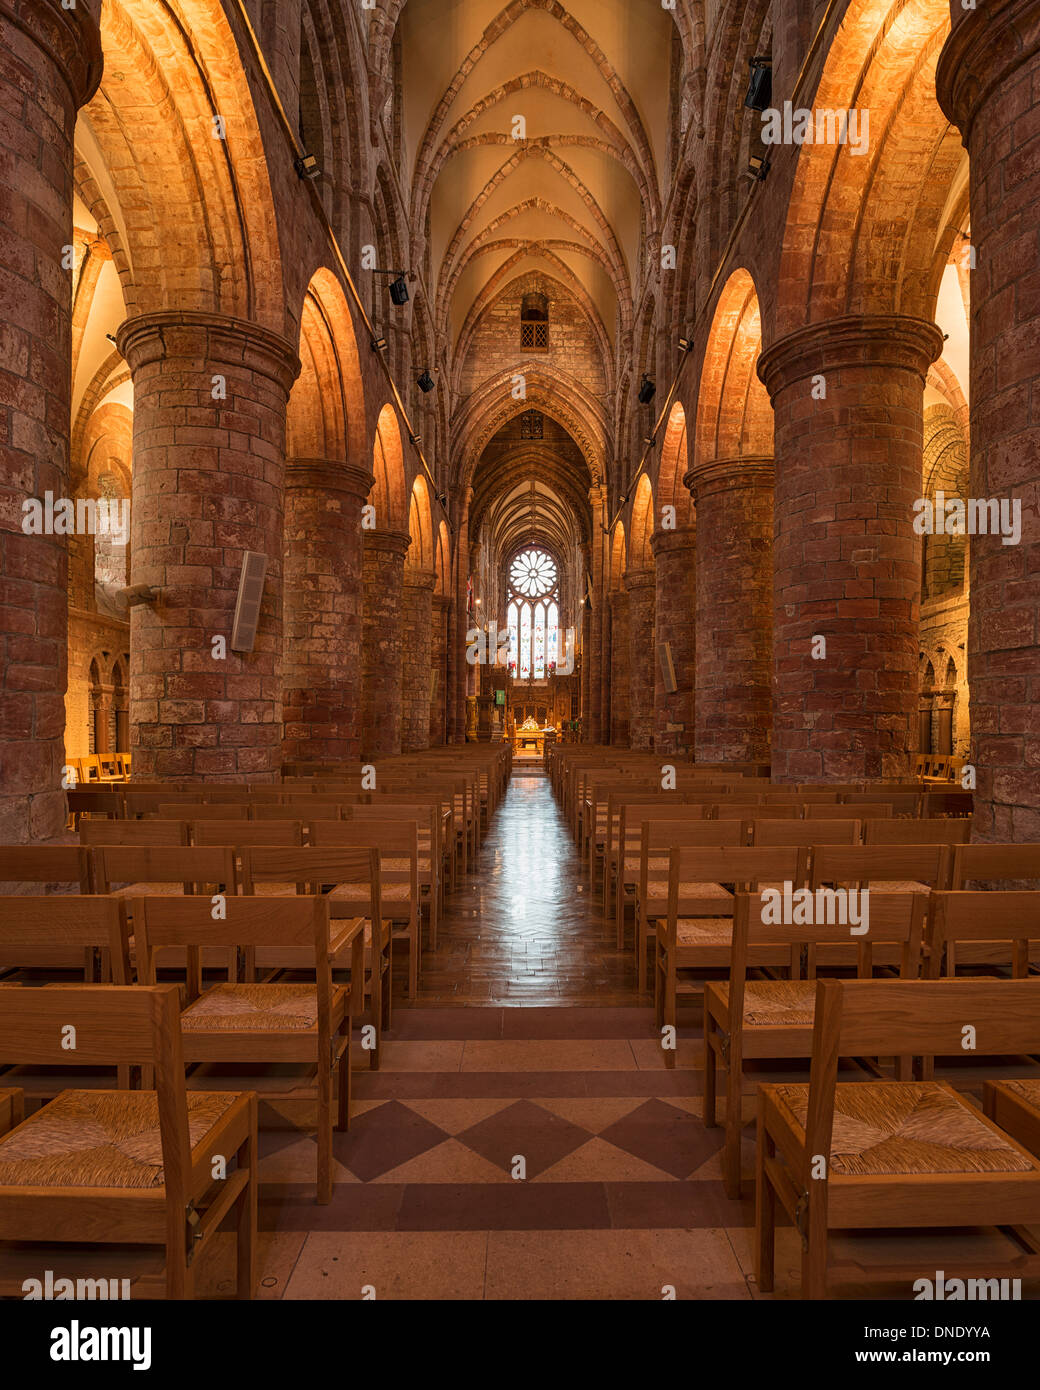 Interior of St. Magnus Cathedral, Kirkwall, Orkney, Scotland - Stock Image